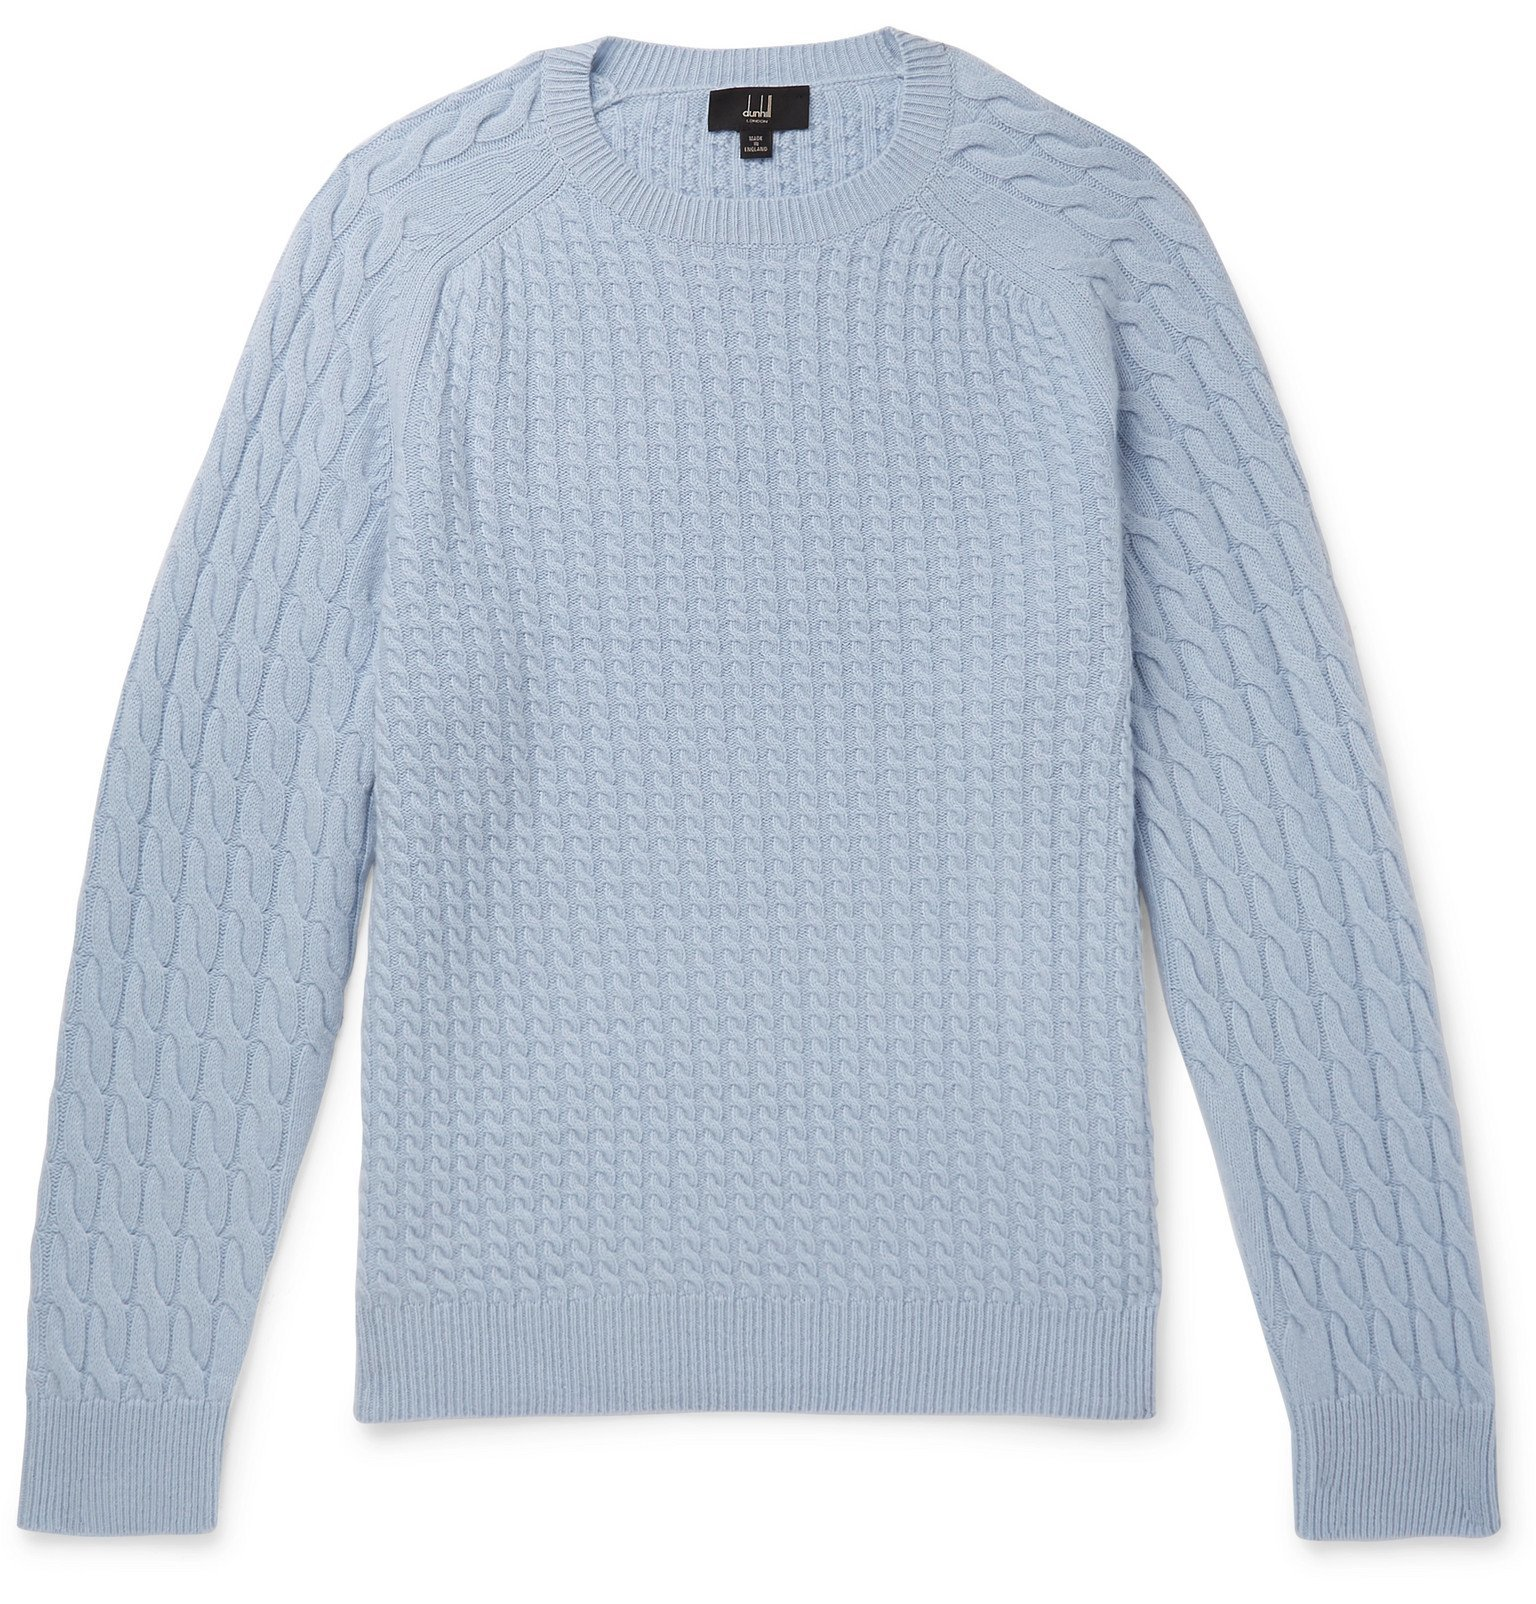 Dunhill - Cable-Knit Cashmere Sweater - Blue